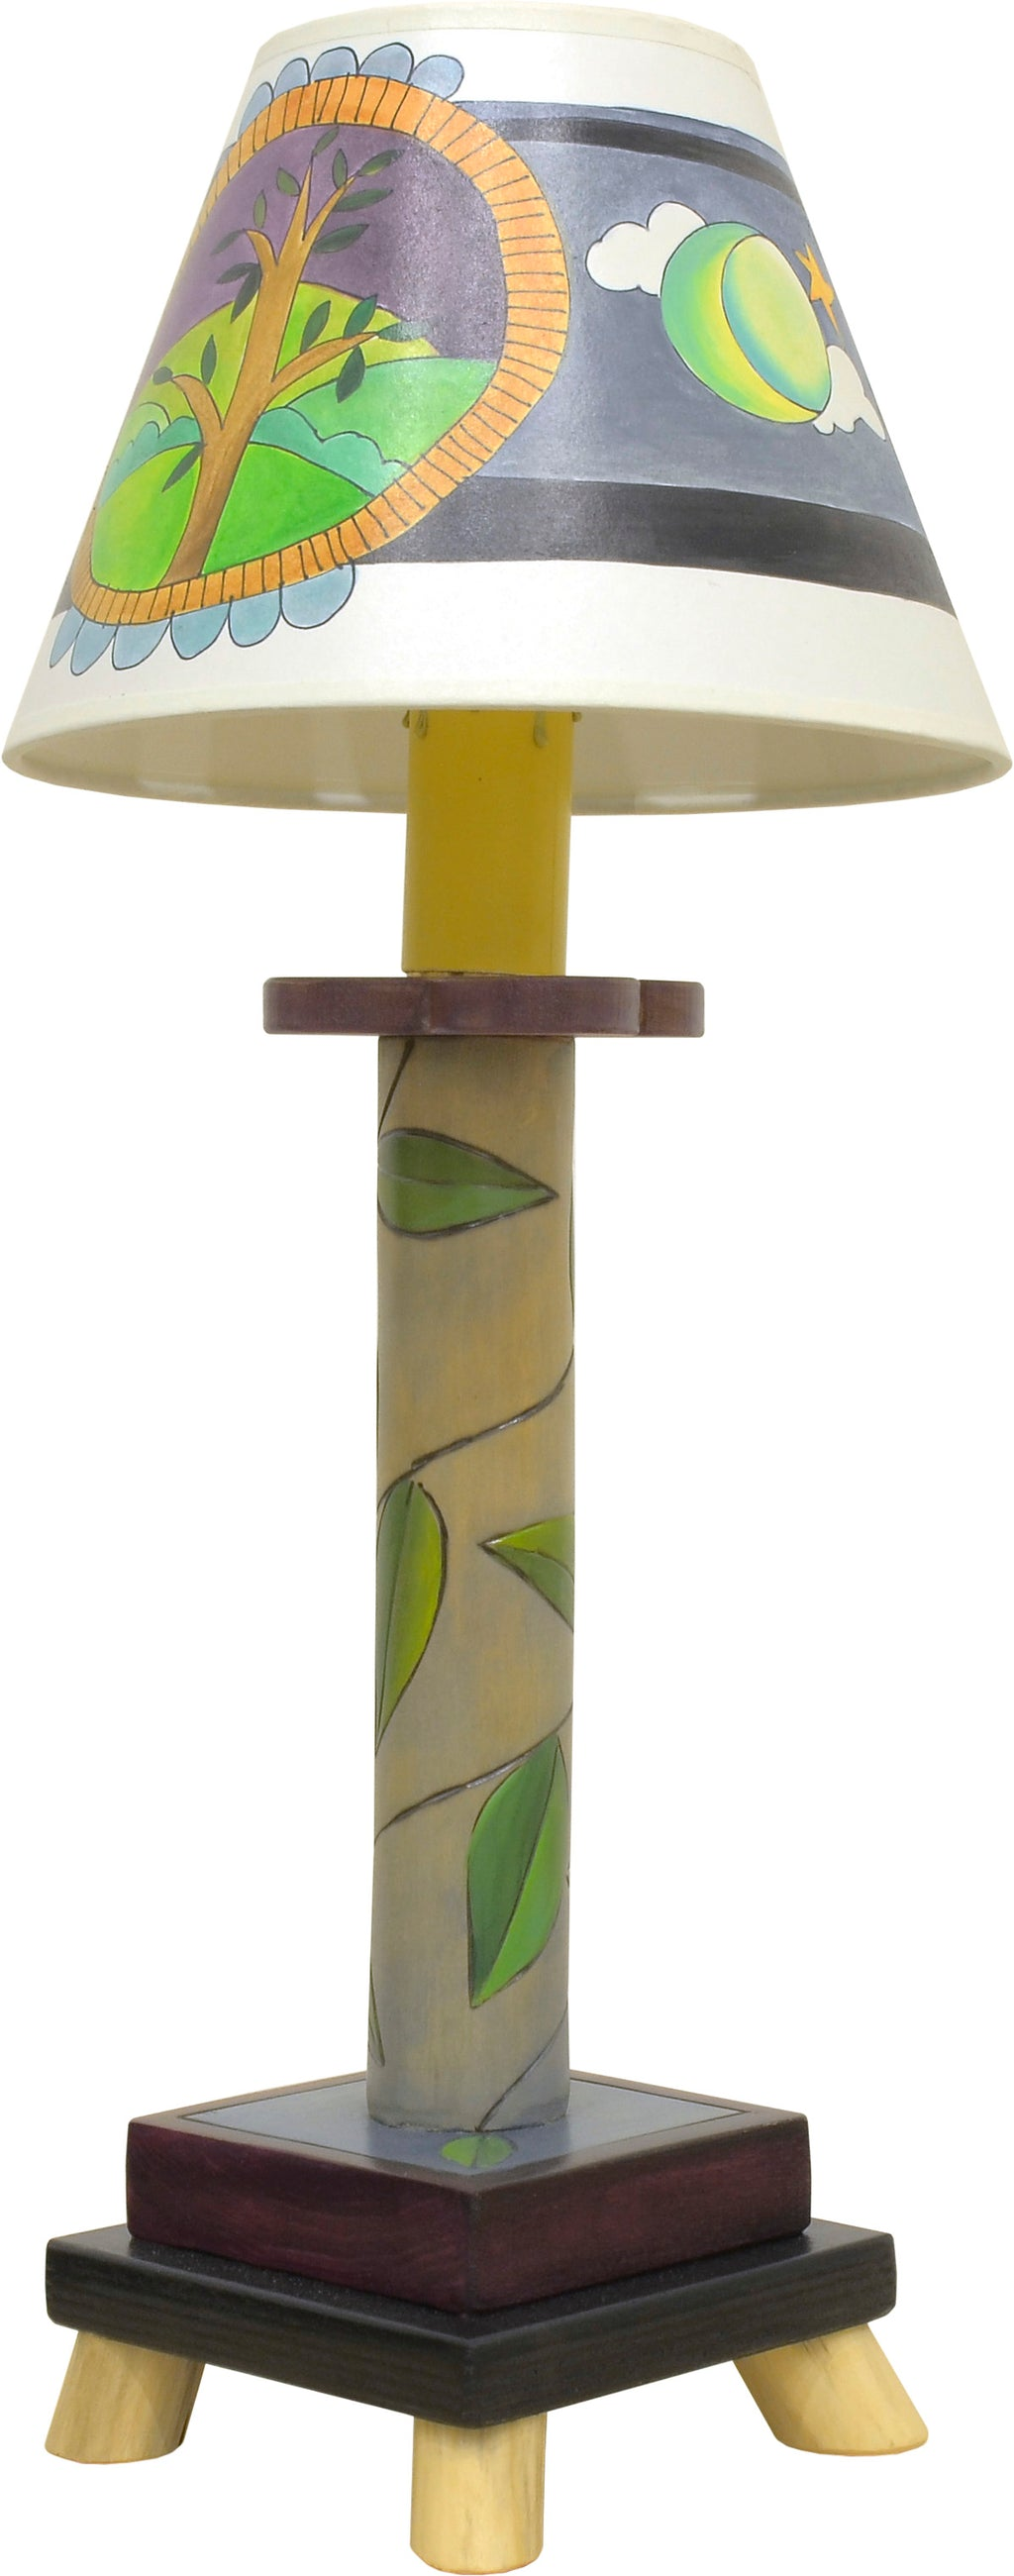 Lovely lamp with a vine-wrapped base and day and night tree of life shade motif, front view